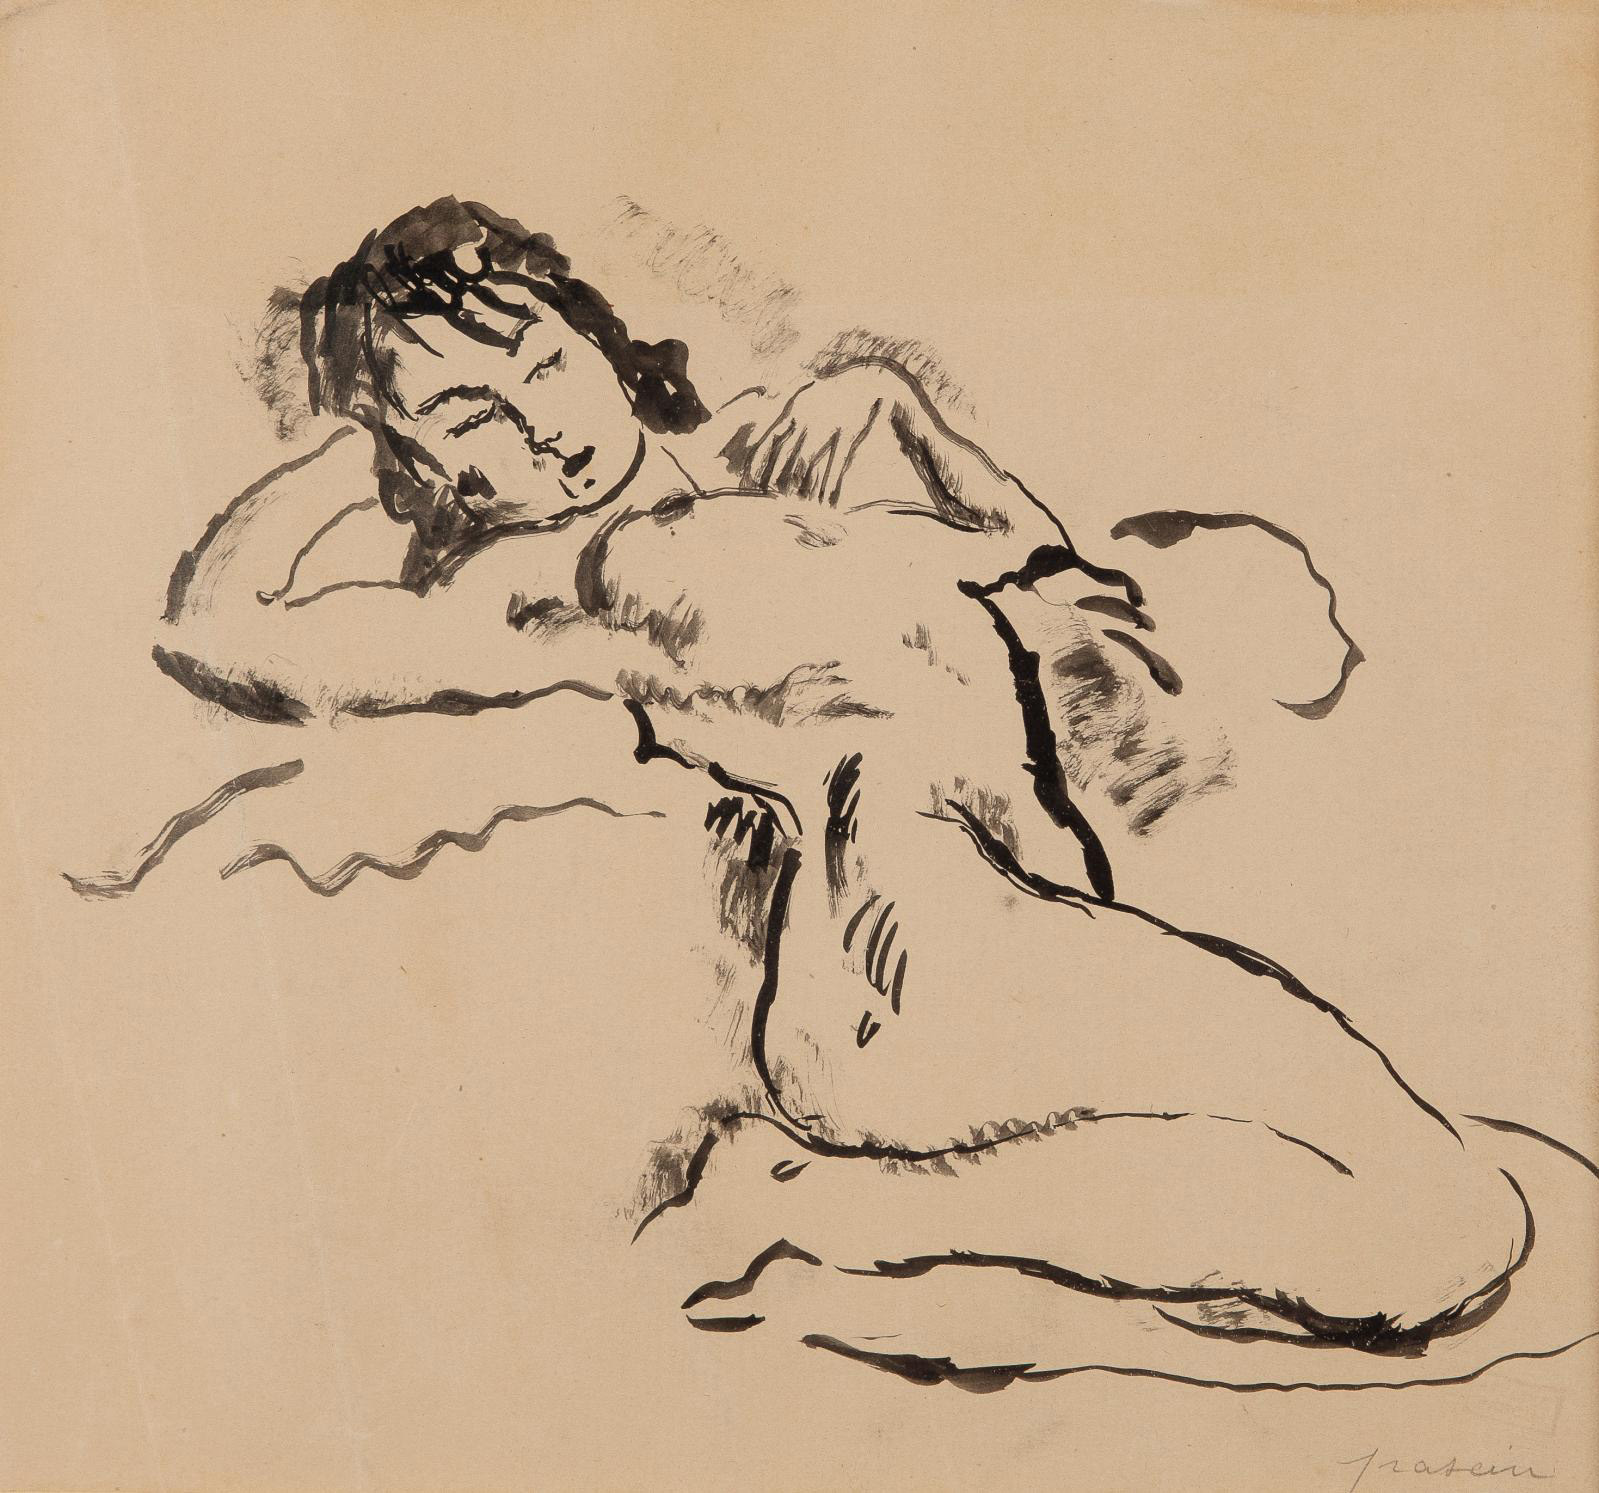 Jules Pascin, Young girl (reclining nude, legs folded), Paris 1925, ink and wash, 22 x 23.5 cm/8.7 x 9.3 in.Estimate: €300/400